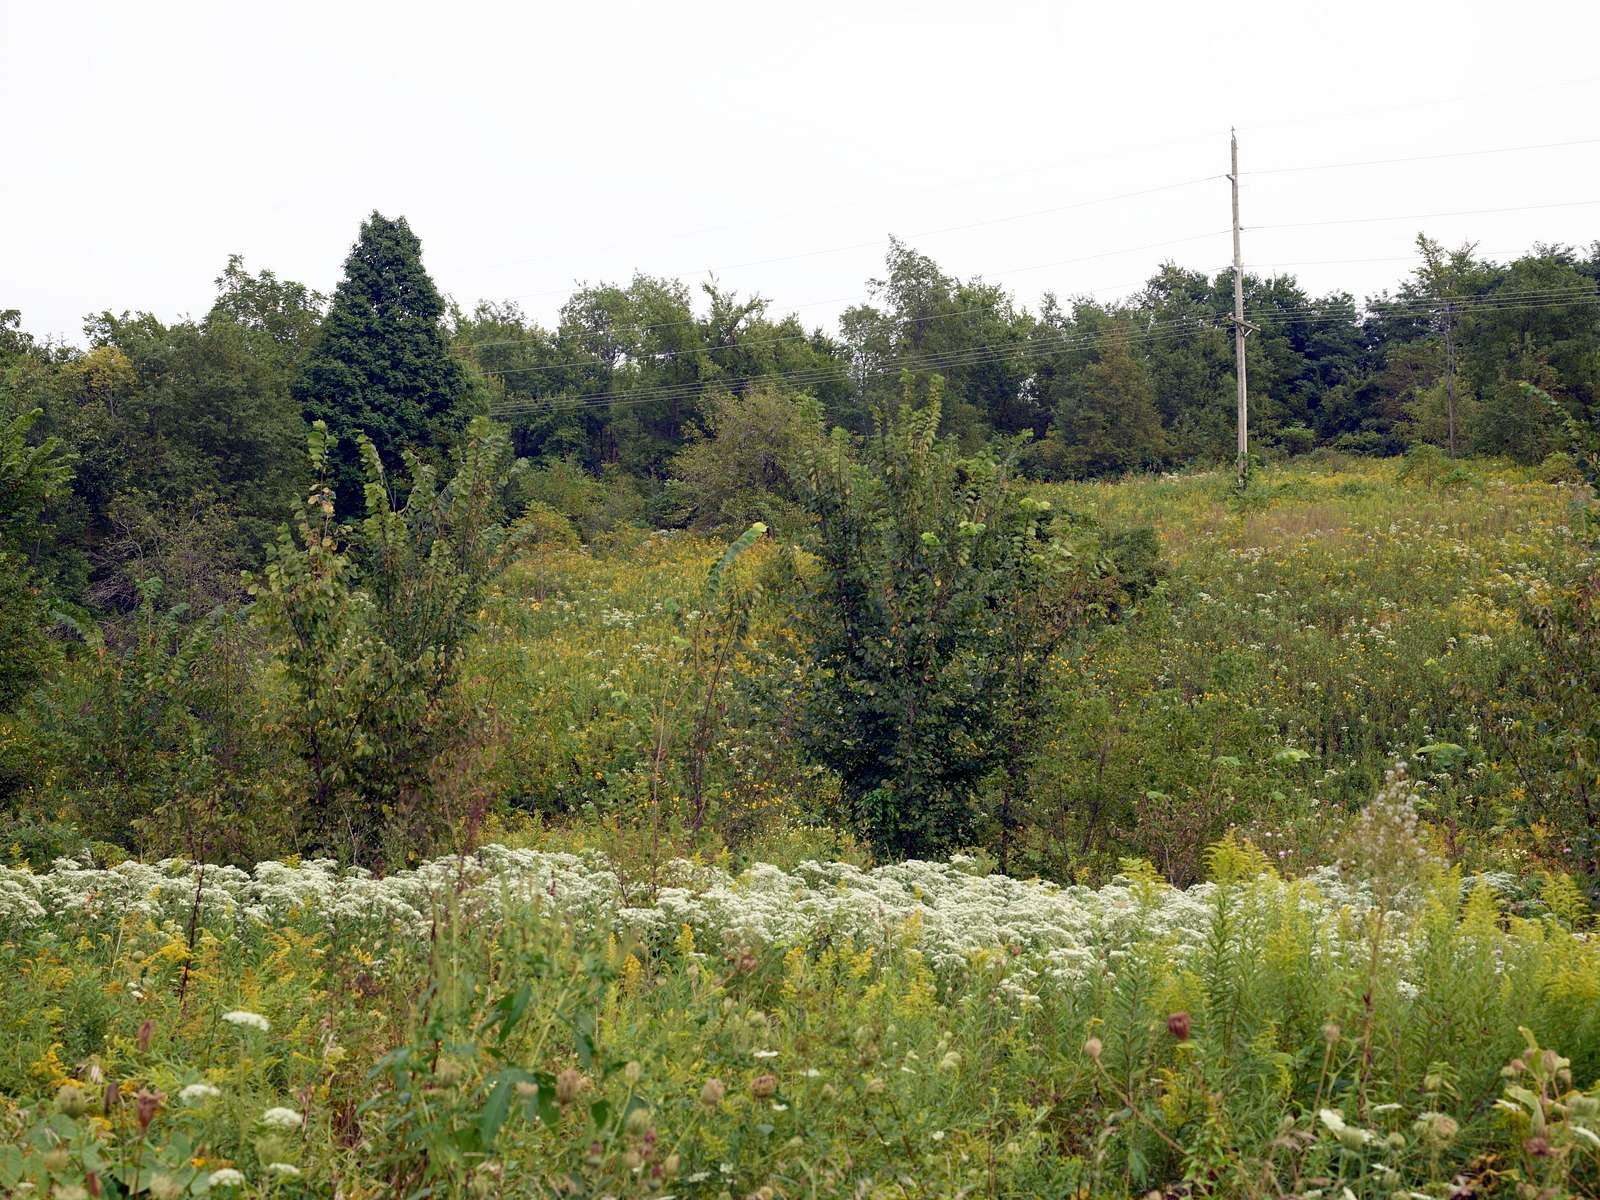 Field of wildflowers in Mineral Point, Wisconsin